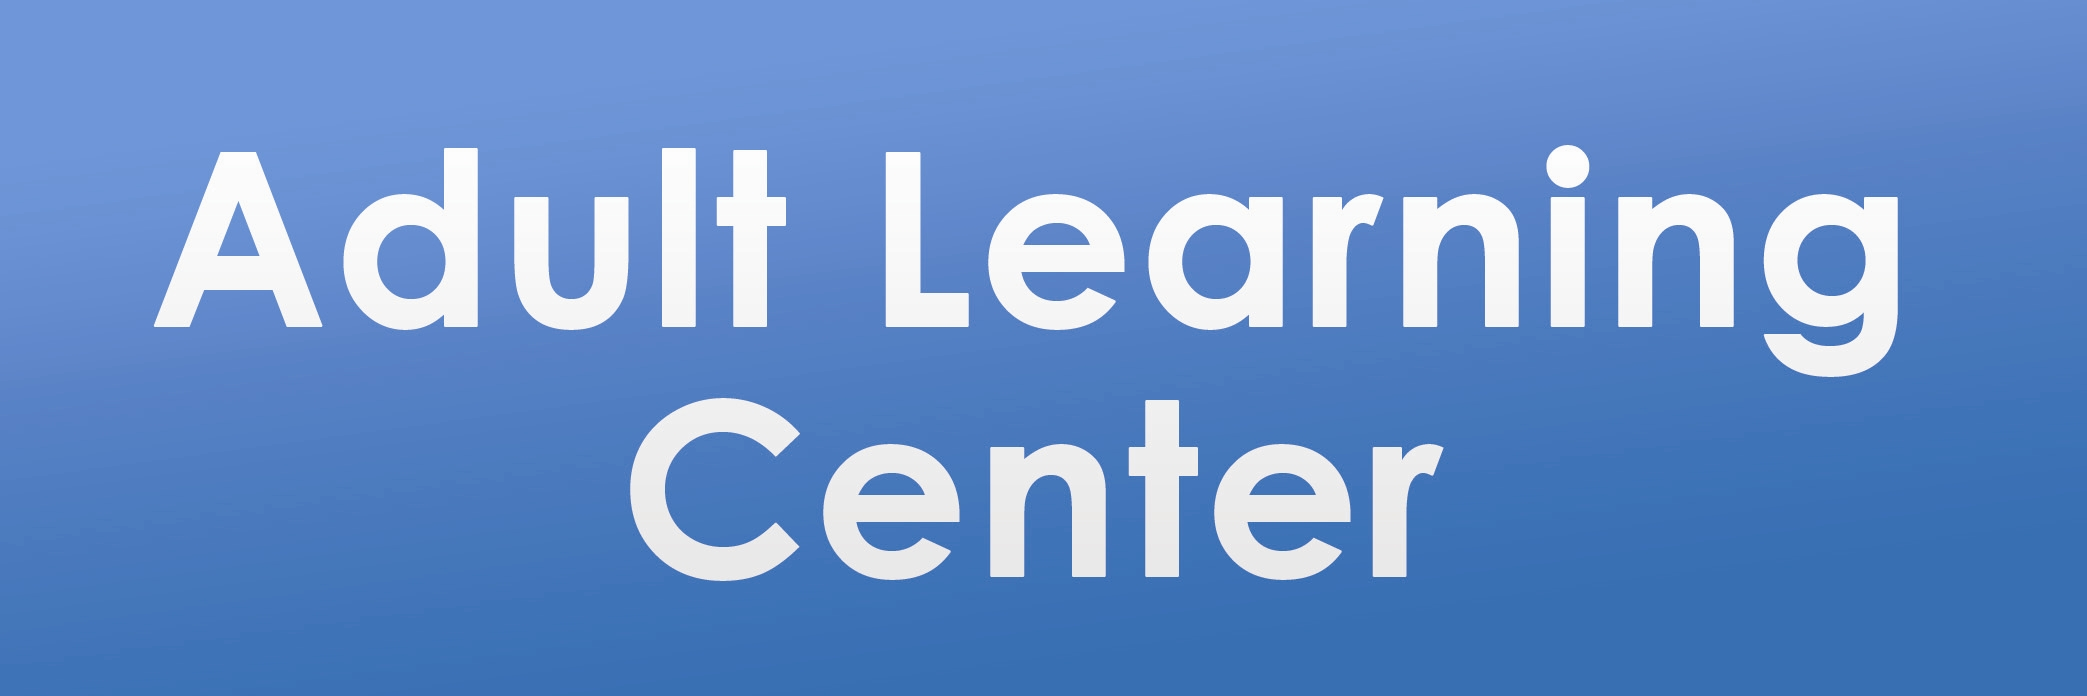 Adult Learning Center